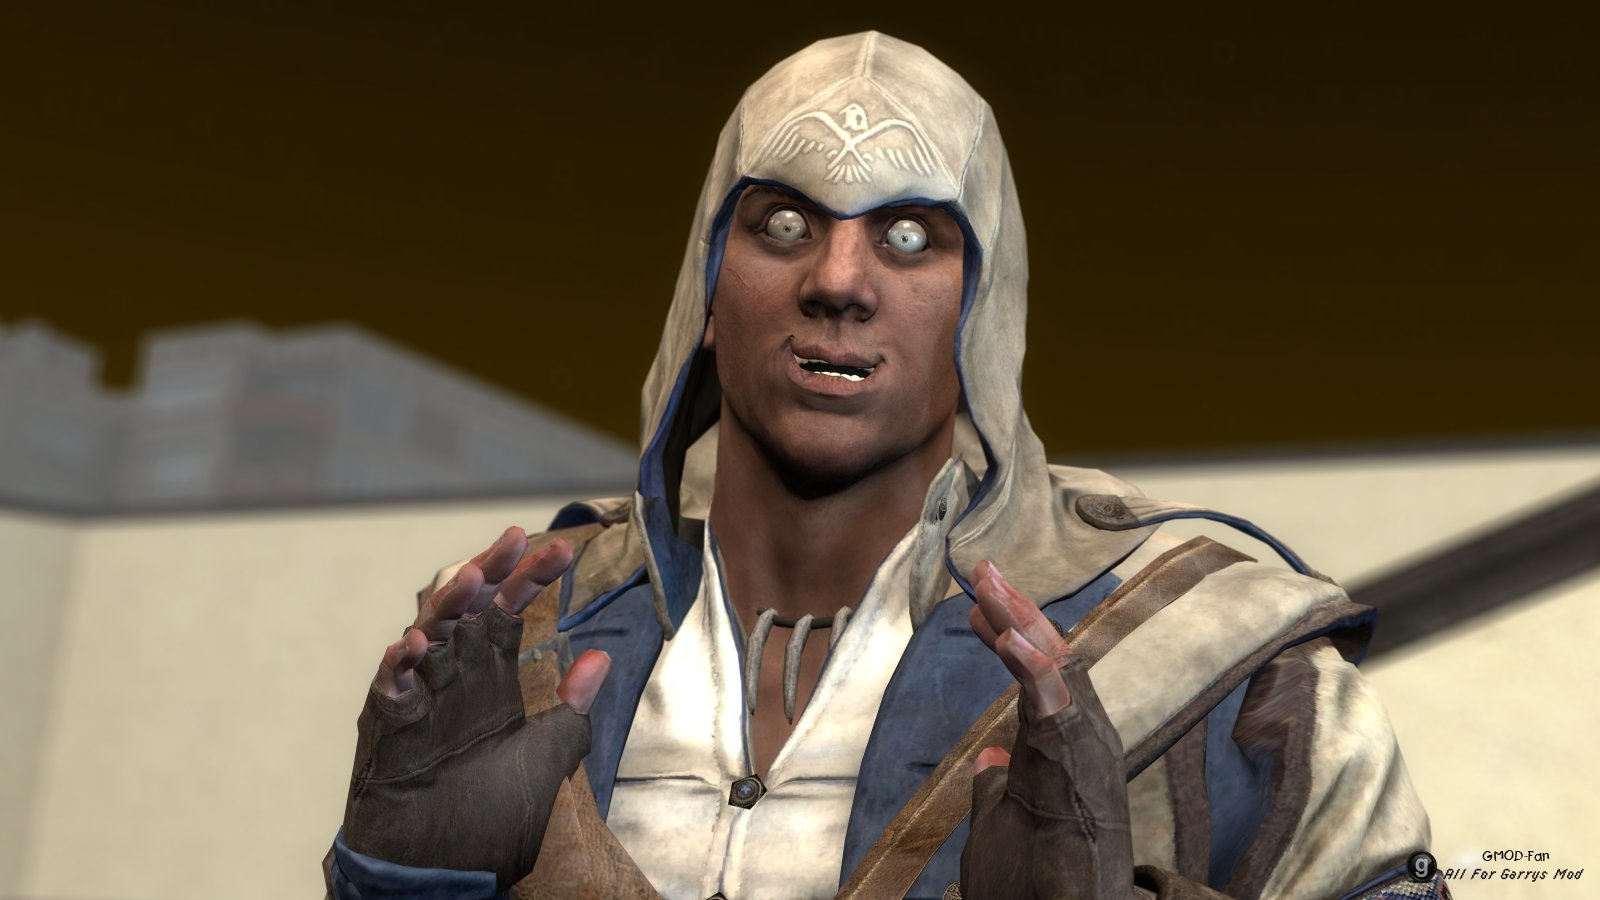 Connor Kenway Meme